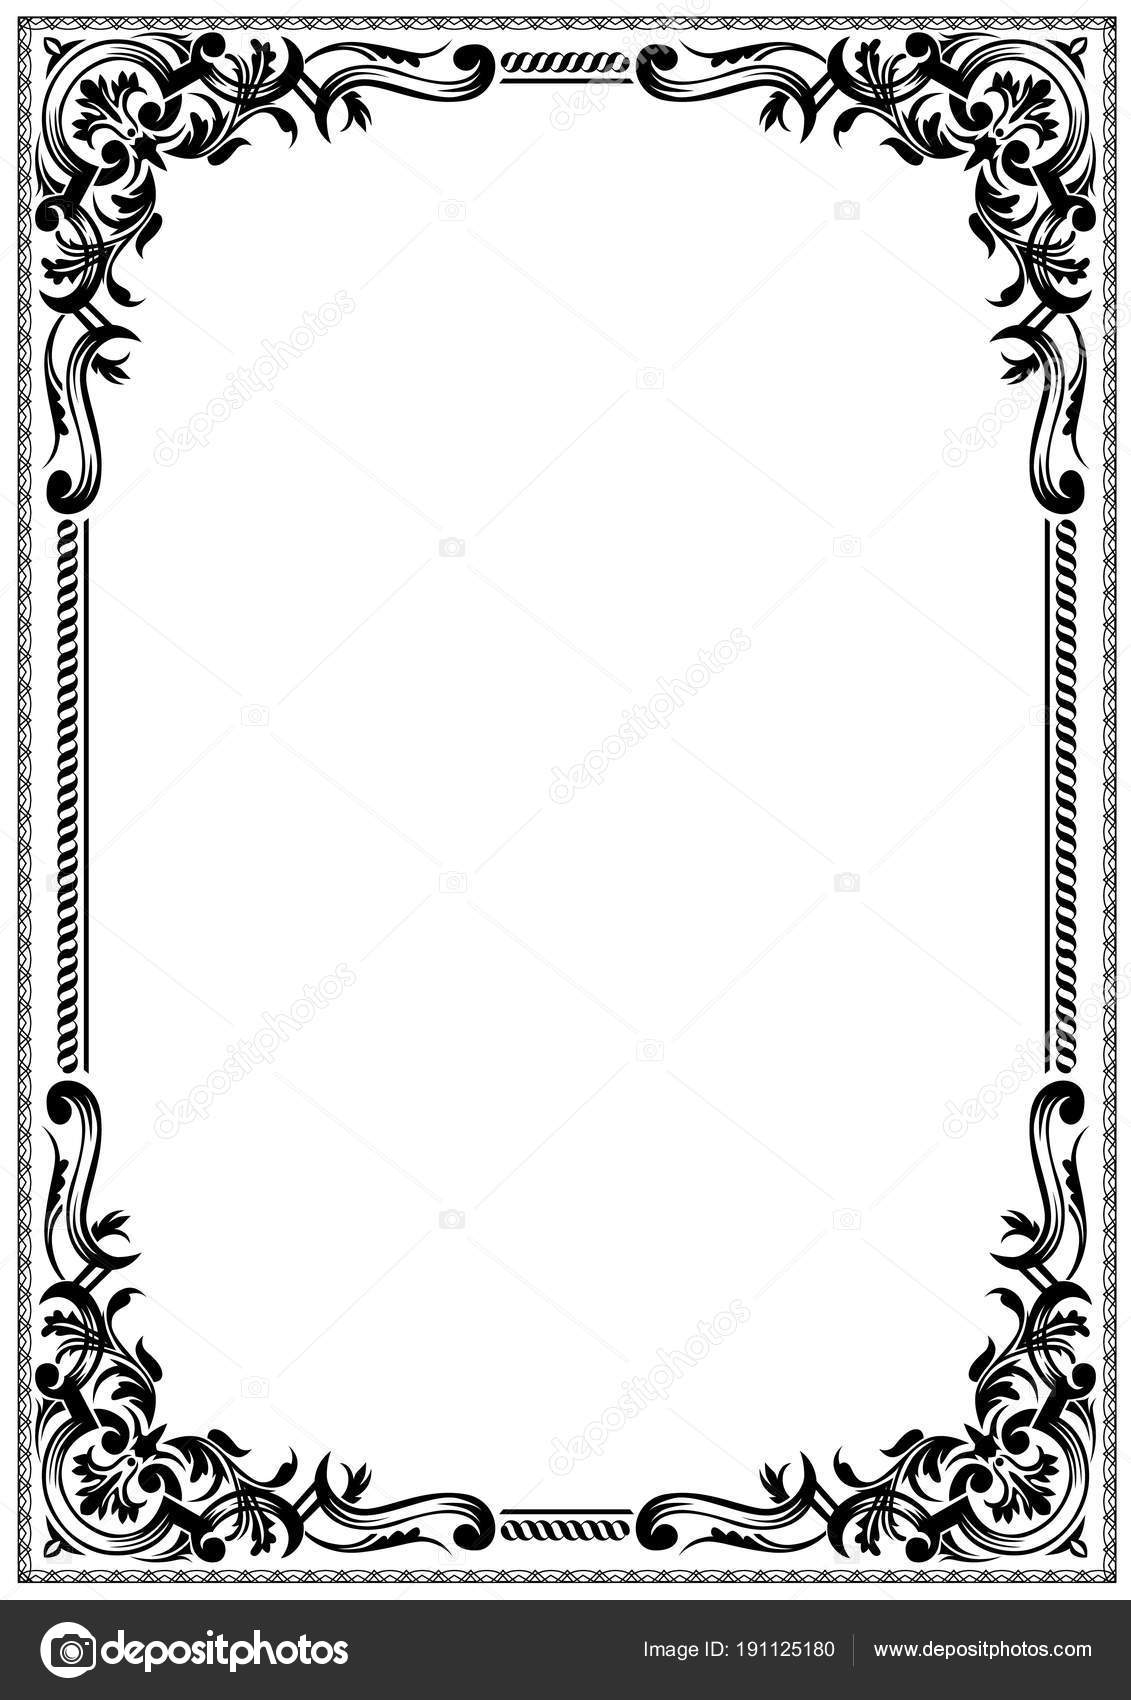 Delicate Black White Frame Border Design Greeting Cards Other Award ...